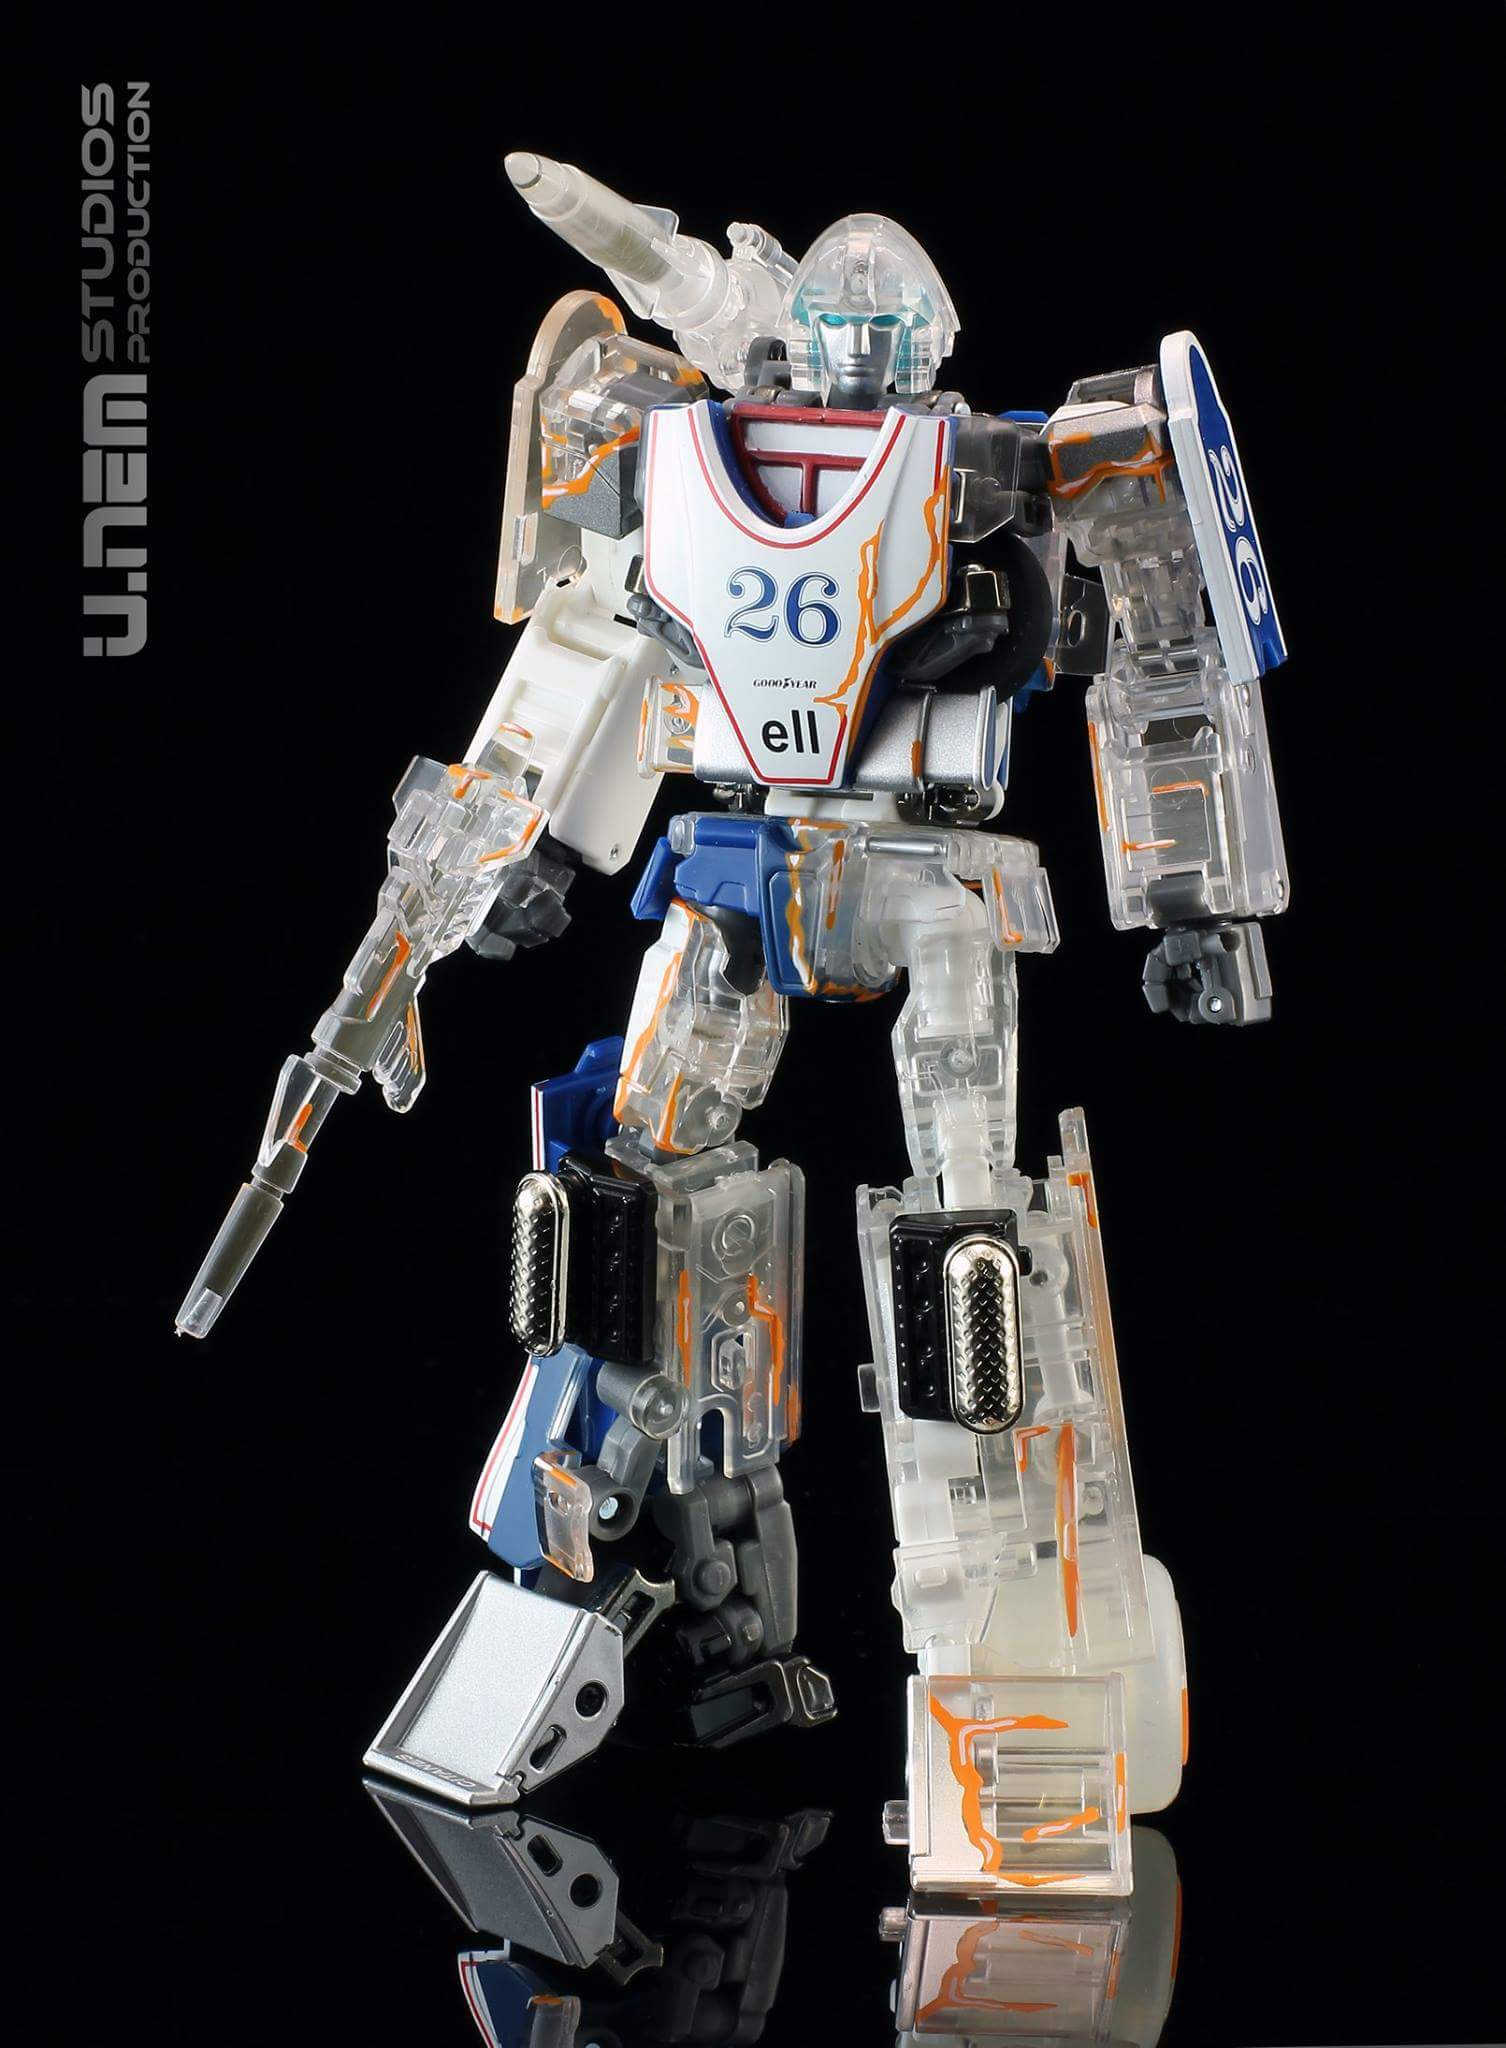 [Ocular Max] Produit Tiers - PS-01 Sphinx (aka Mirage G1) + PS-02 Liger (aka Mirage Diaclone) - Page 3 AKstO3tw